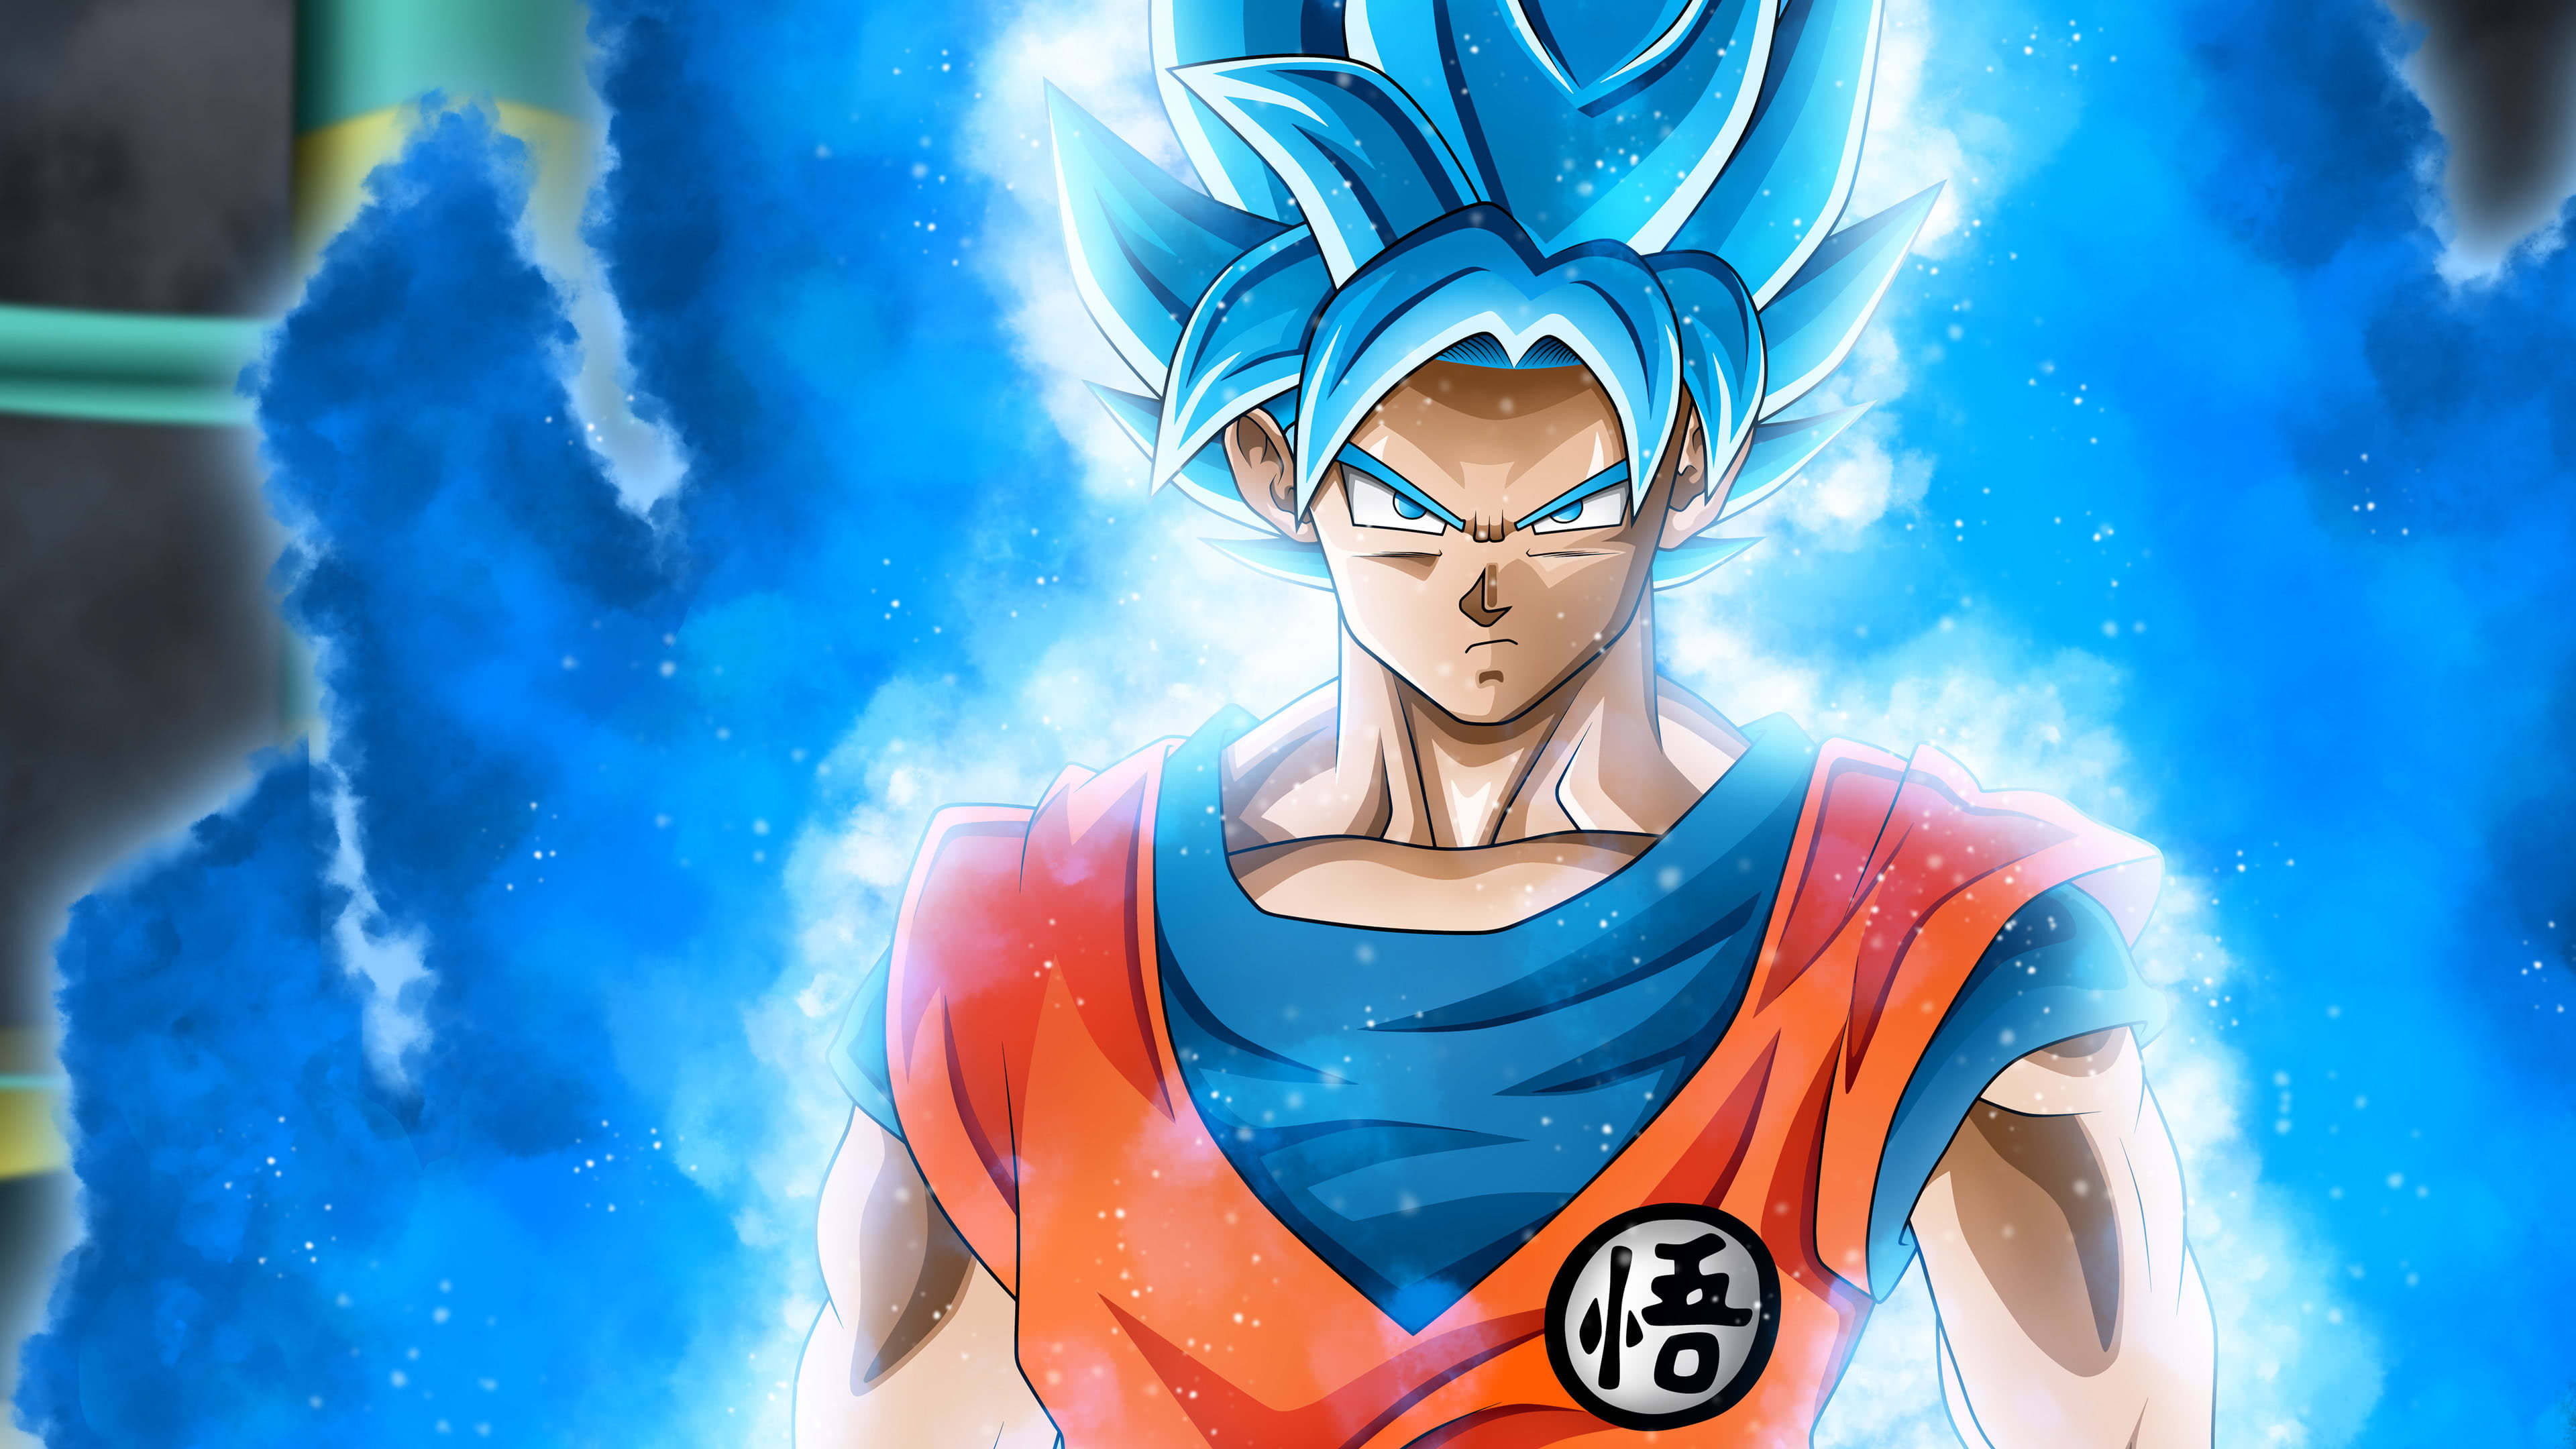 Dragon Ball Super Blue Goku Portrait Uhd 4k Wallpaper Pixelz